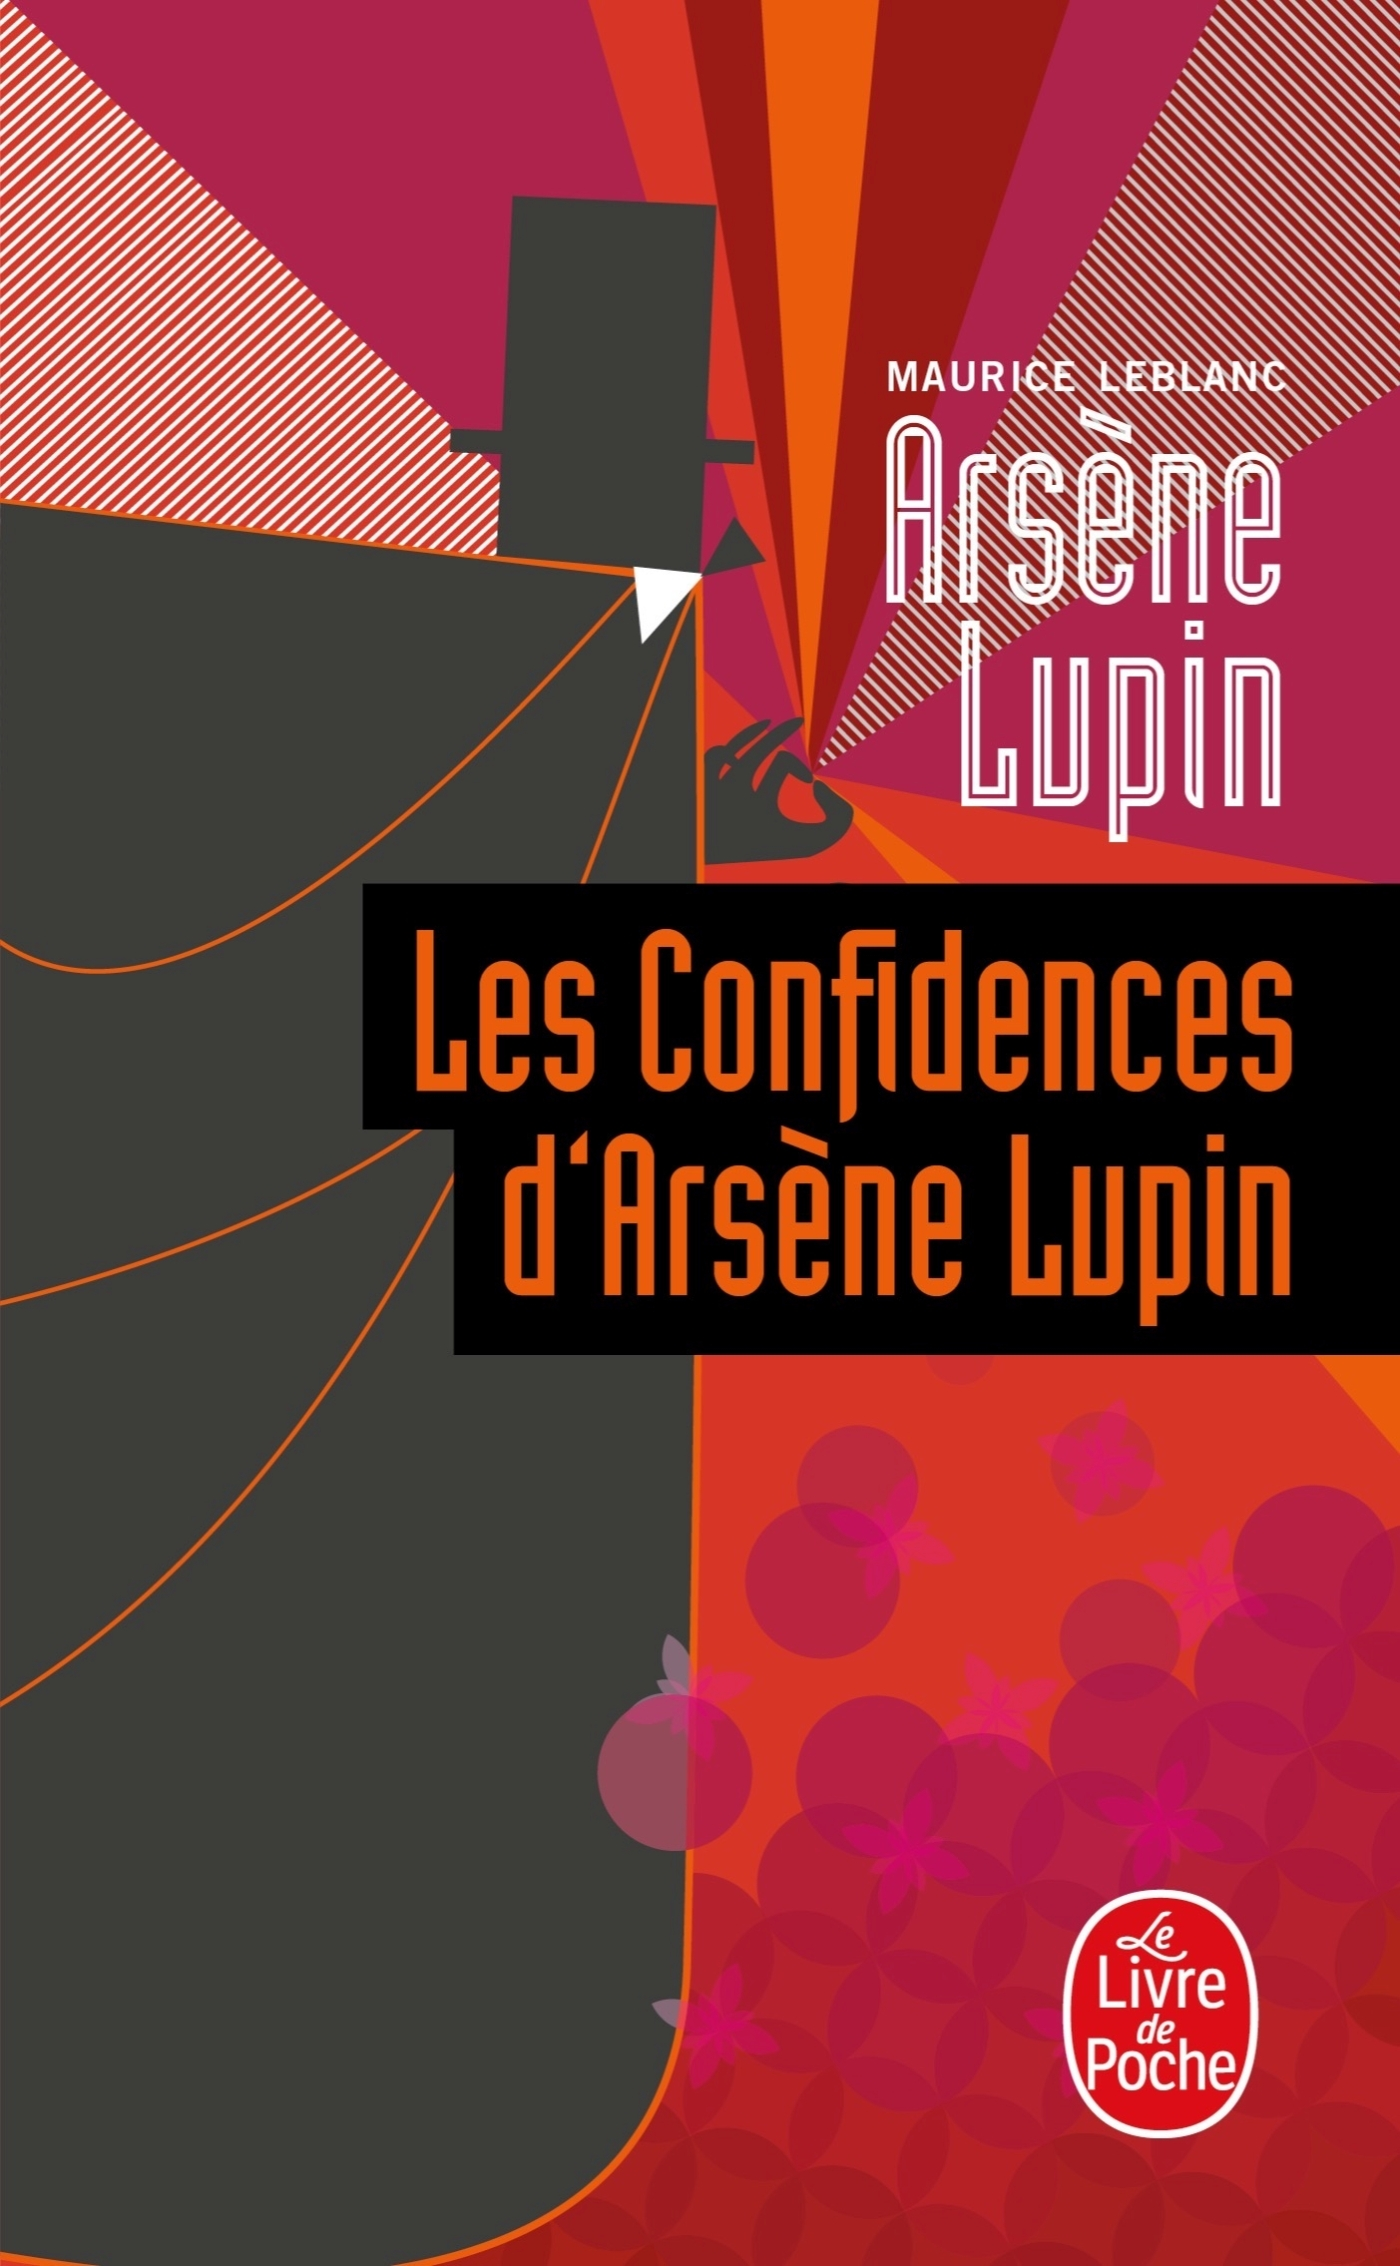 LES CONFIDENCES D'ARSENE LUPIN